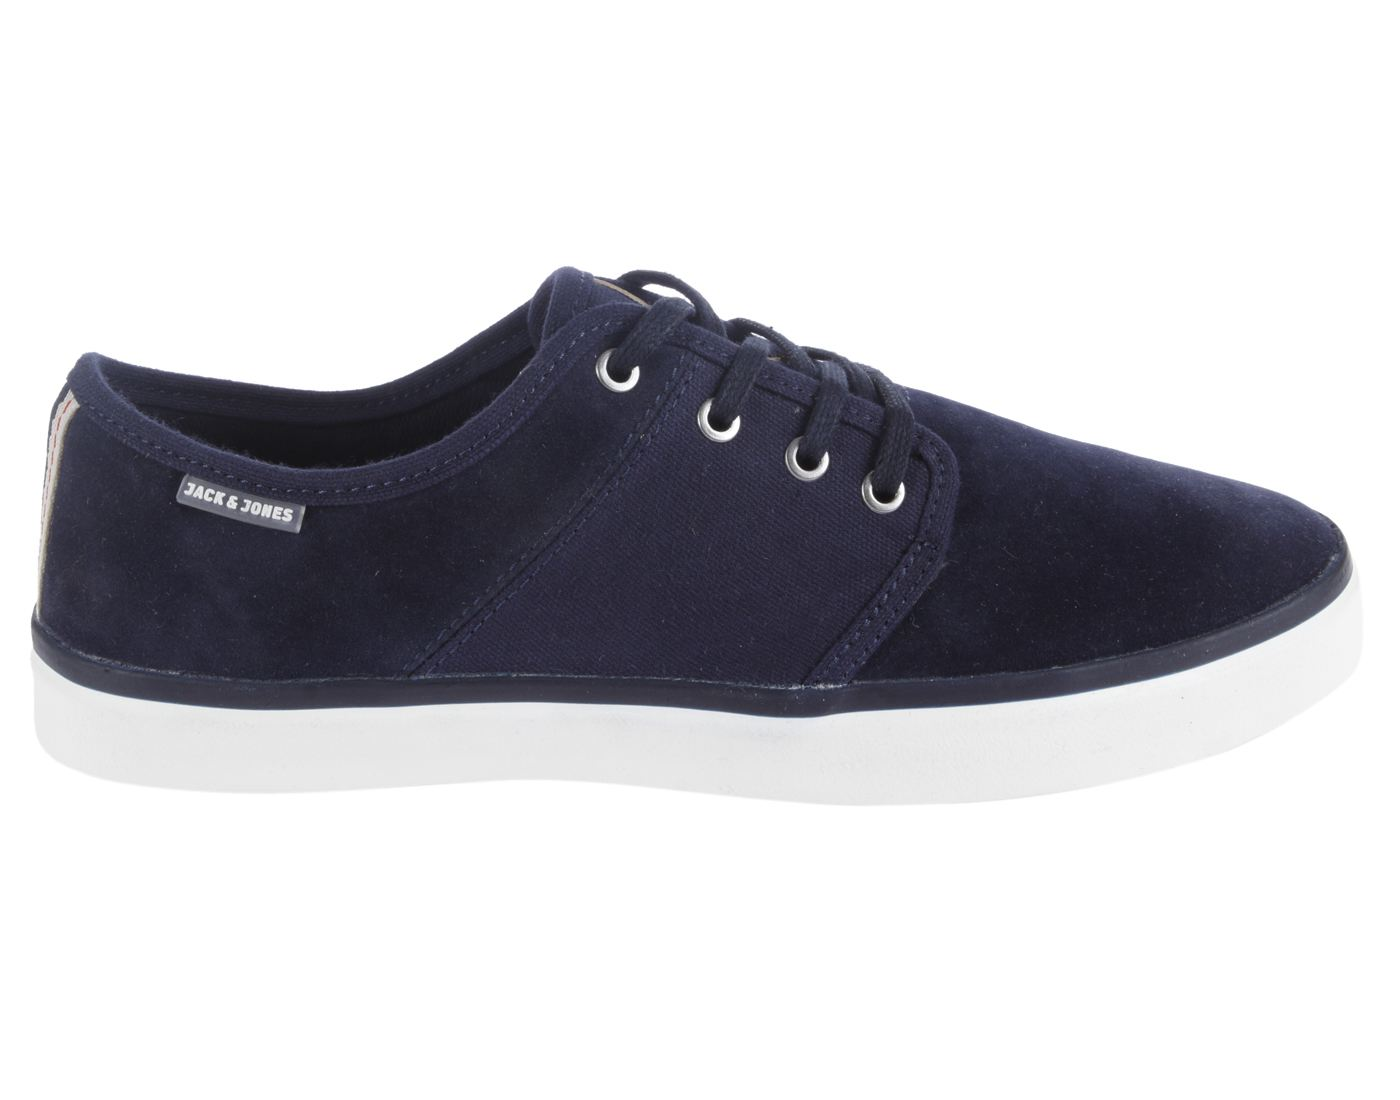 Jack & Jones Navy Blazer Leather (TPR Sole) Lace-up Sneakers